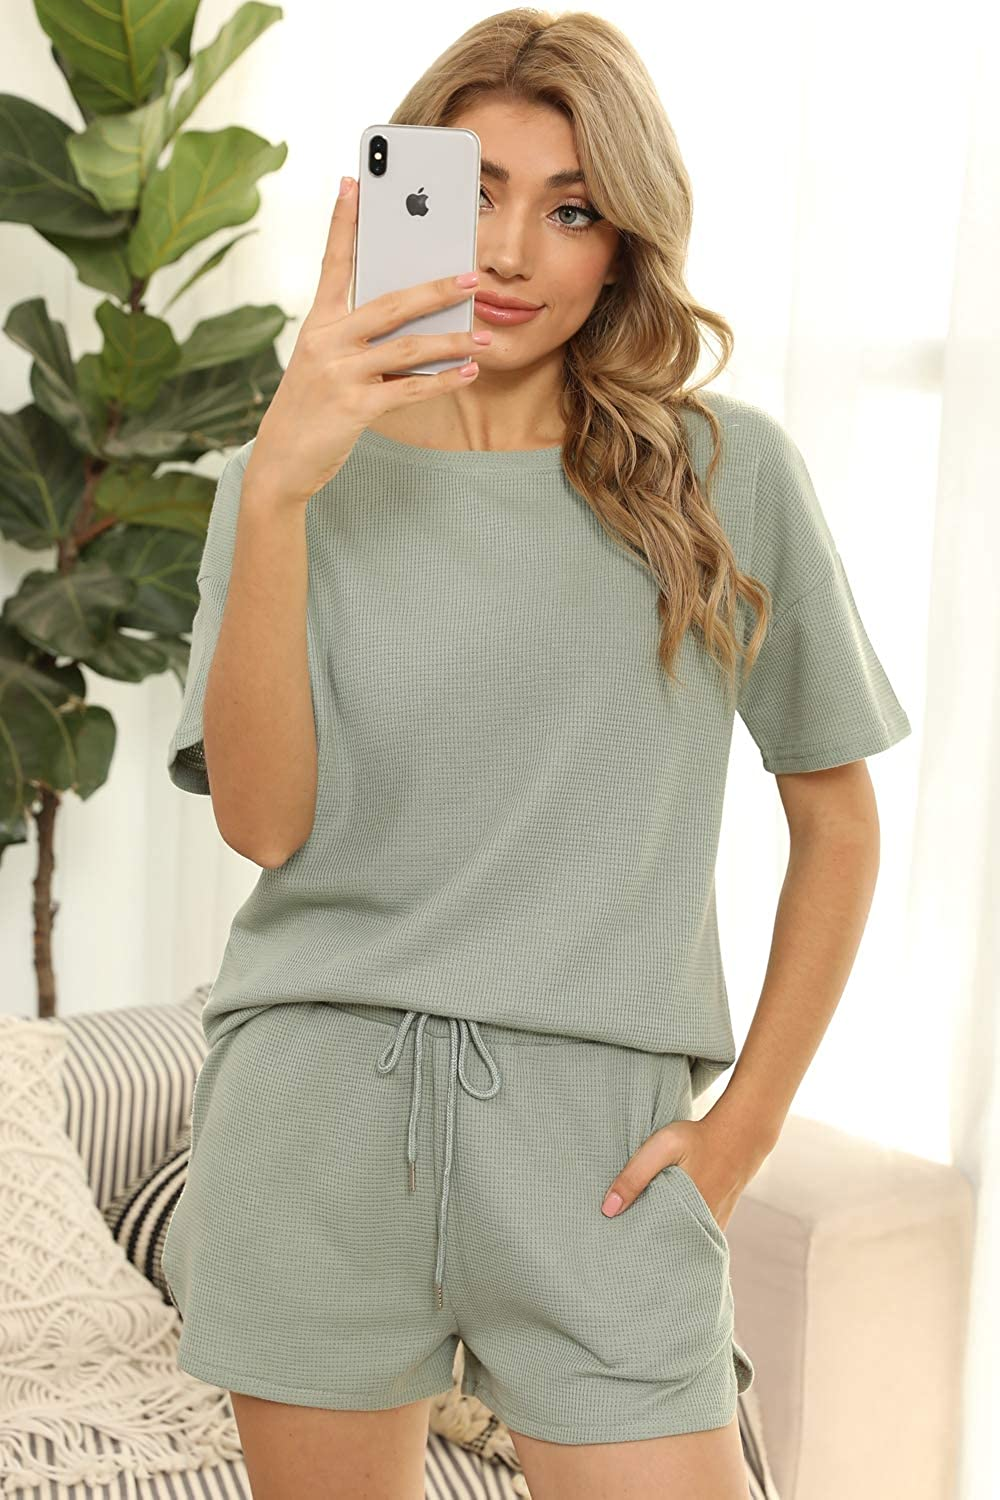 Women's 2 Piece Outfits Waffle Knit Lounge Pajama Sets Summer Top And Shorts Suits